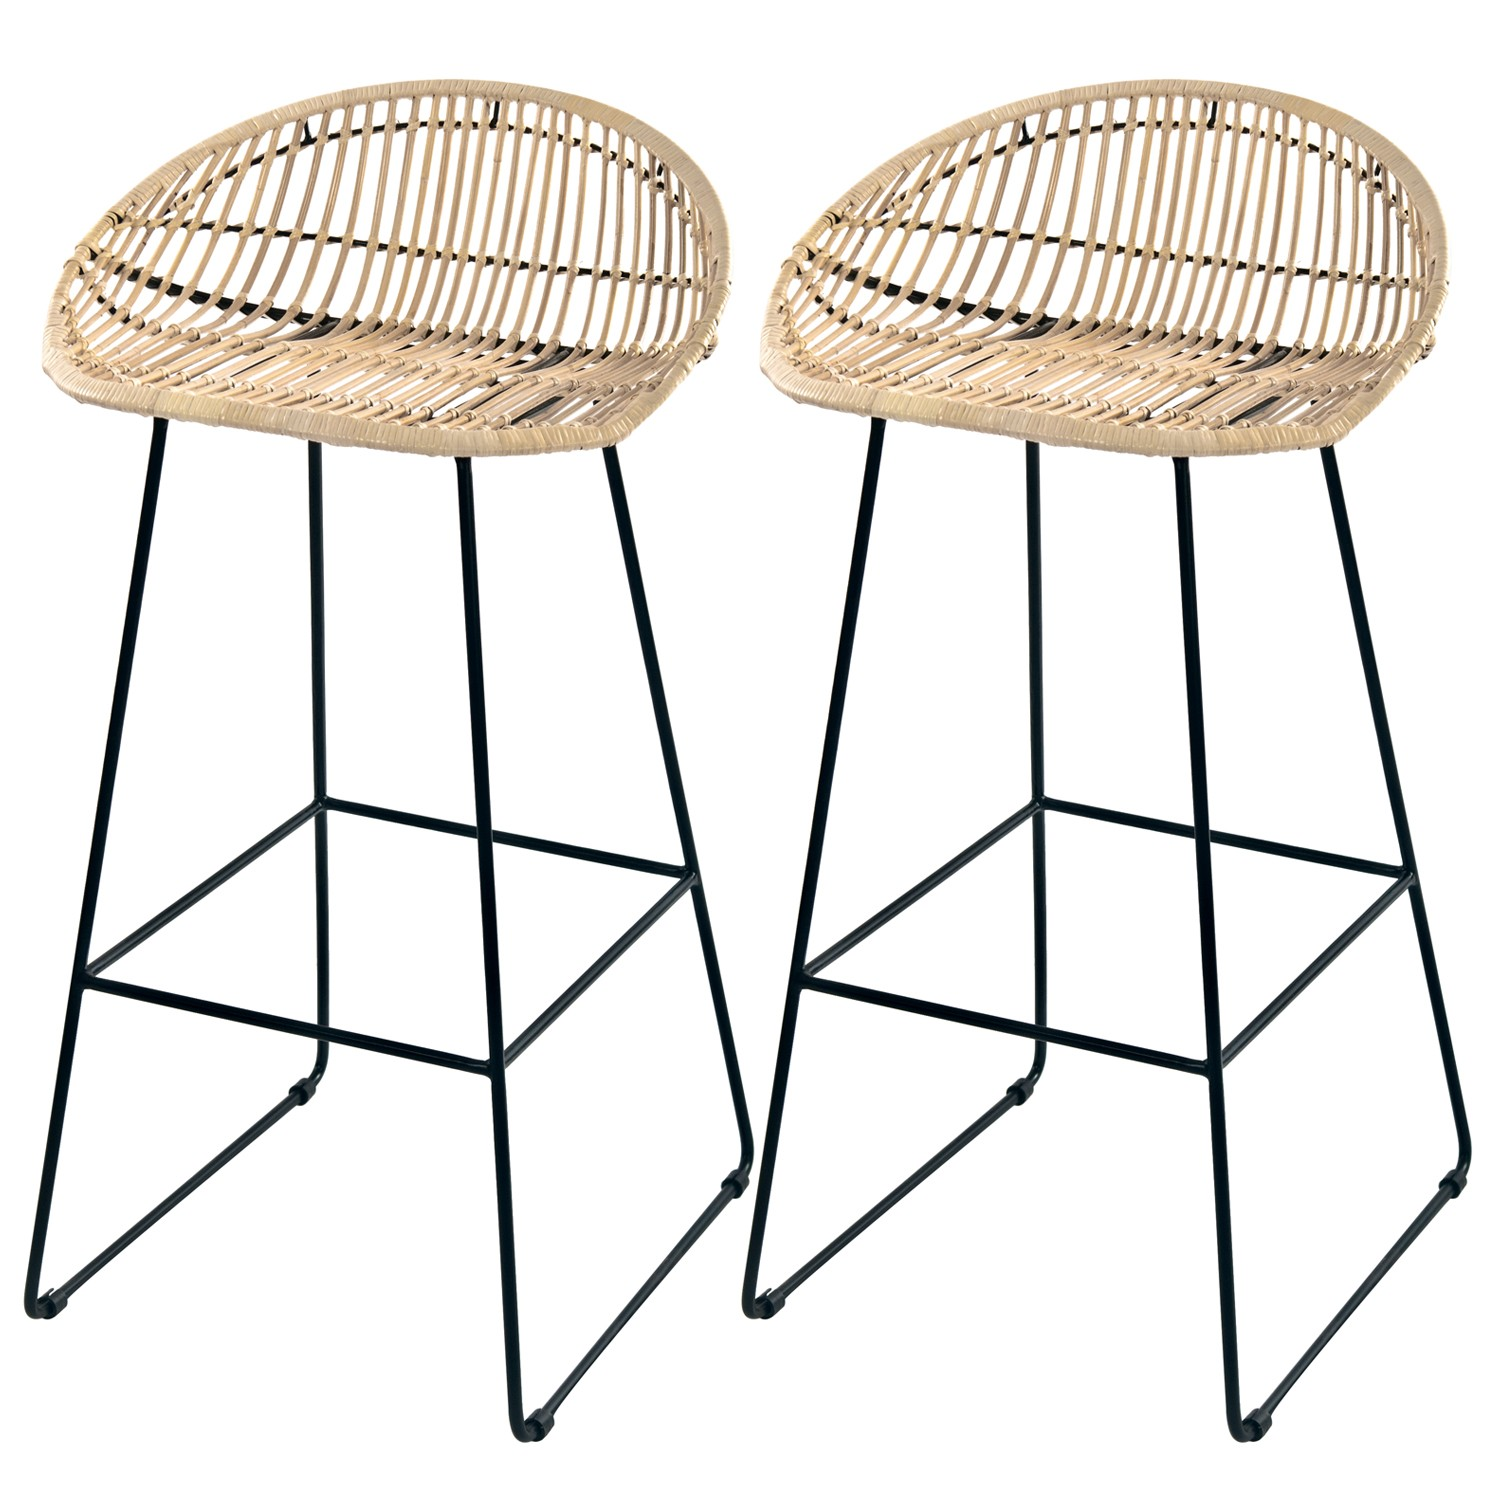 tabouret de bar lotus en rotin naturel pieds en m tal lot. Black Bedroom Furniture Sets. Home Design Ideas